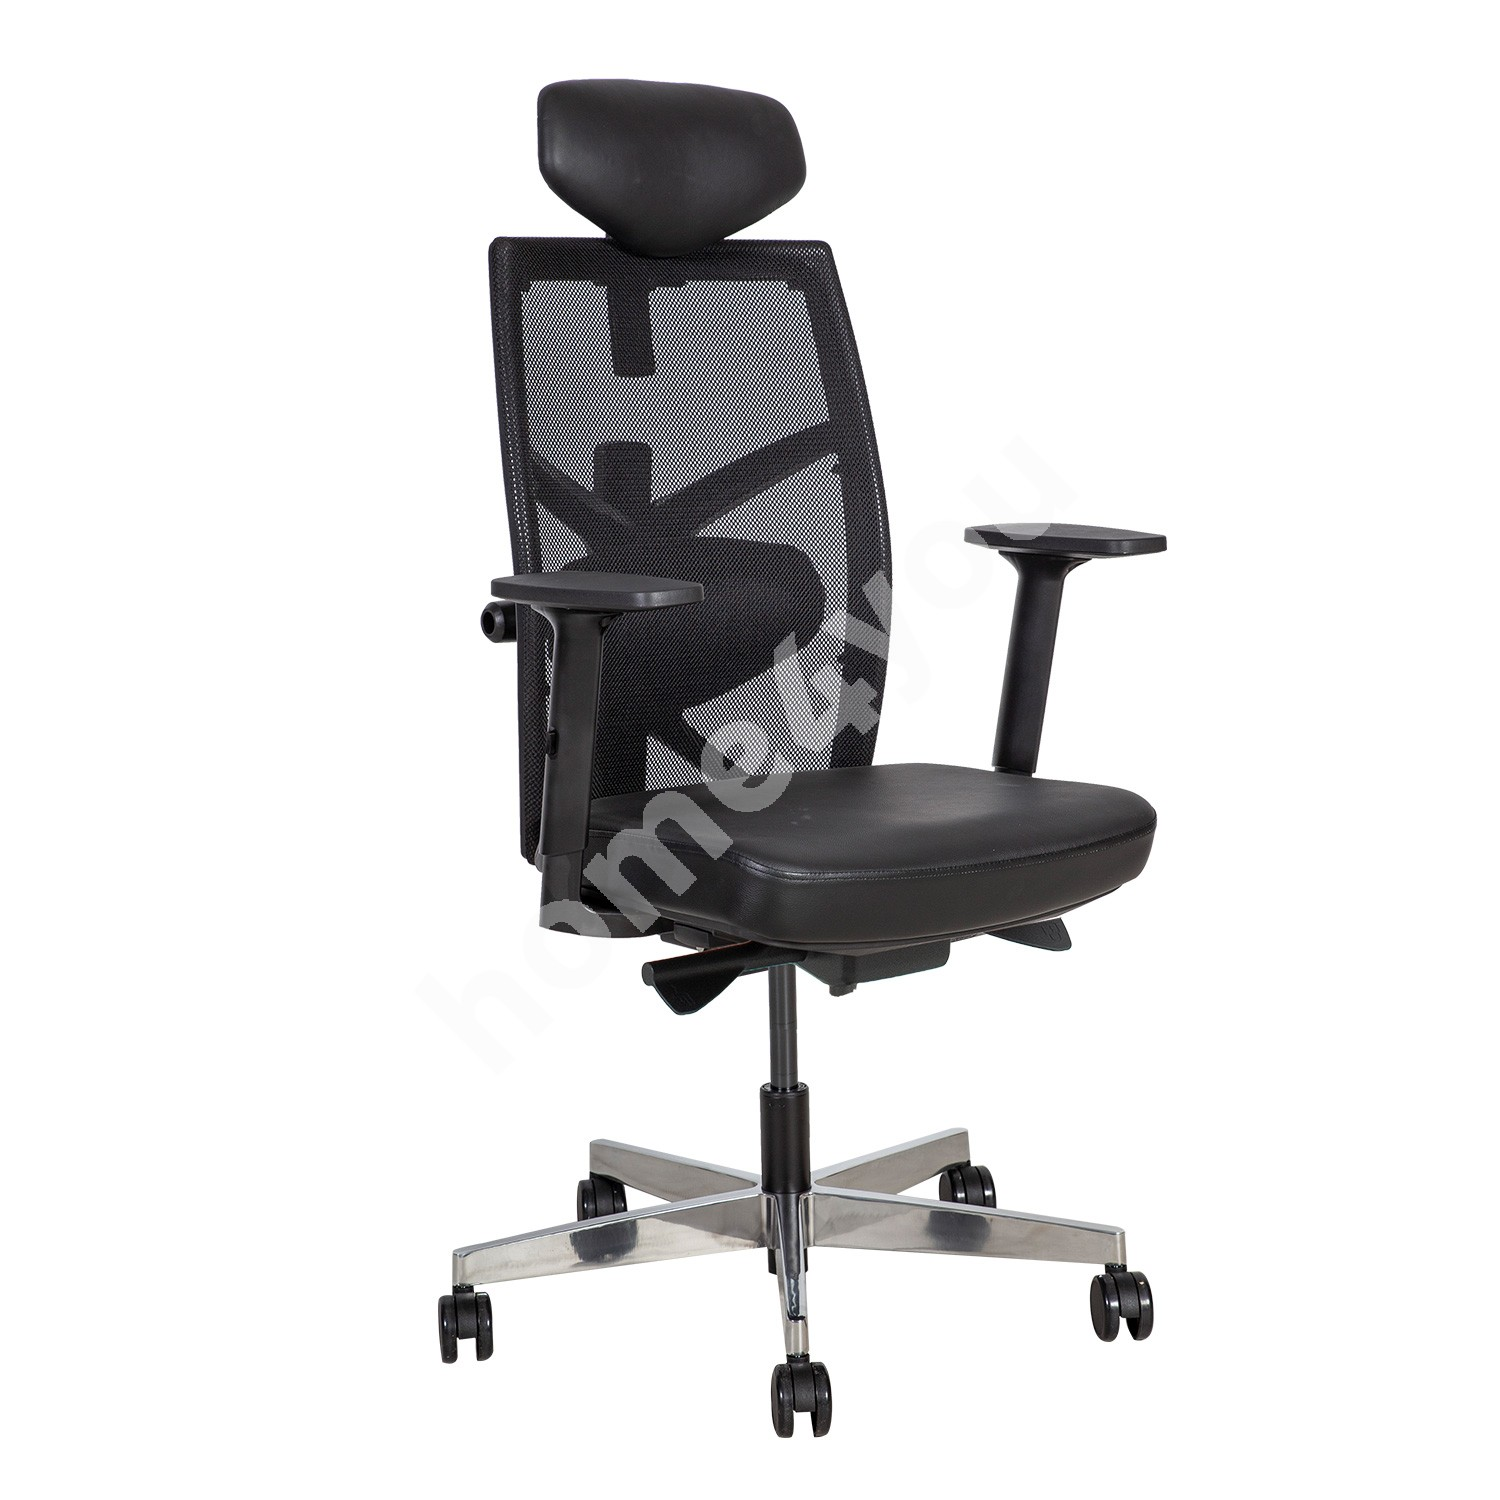 Task chair TUNE 70x70xH111-128cm, seat: leather, back rest: mesh fabric, color: balck